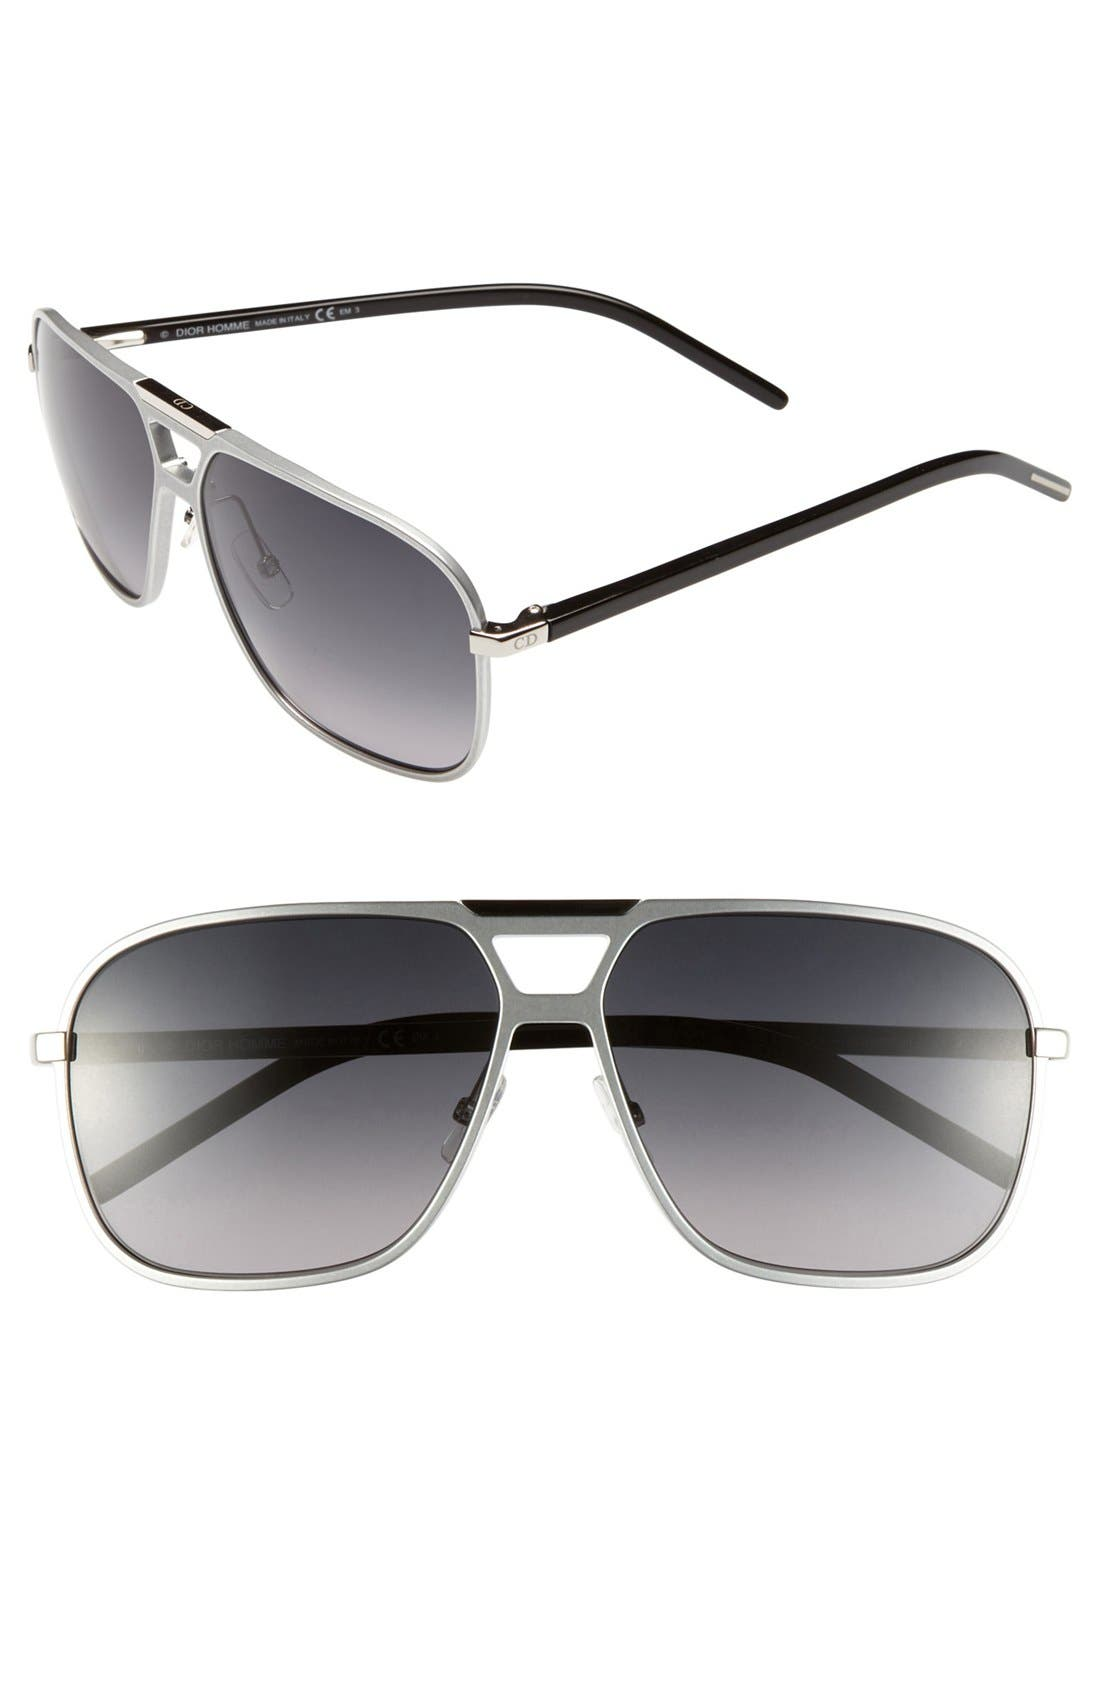 Main Image - Dior Homme '134S' 61mm Sunglasses